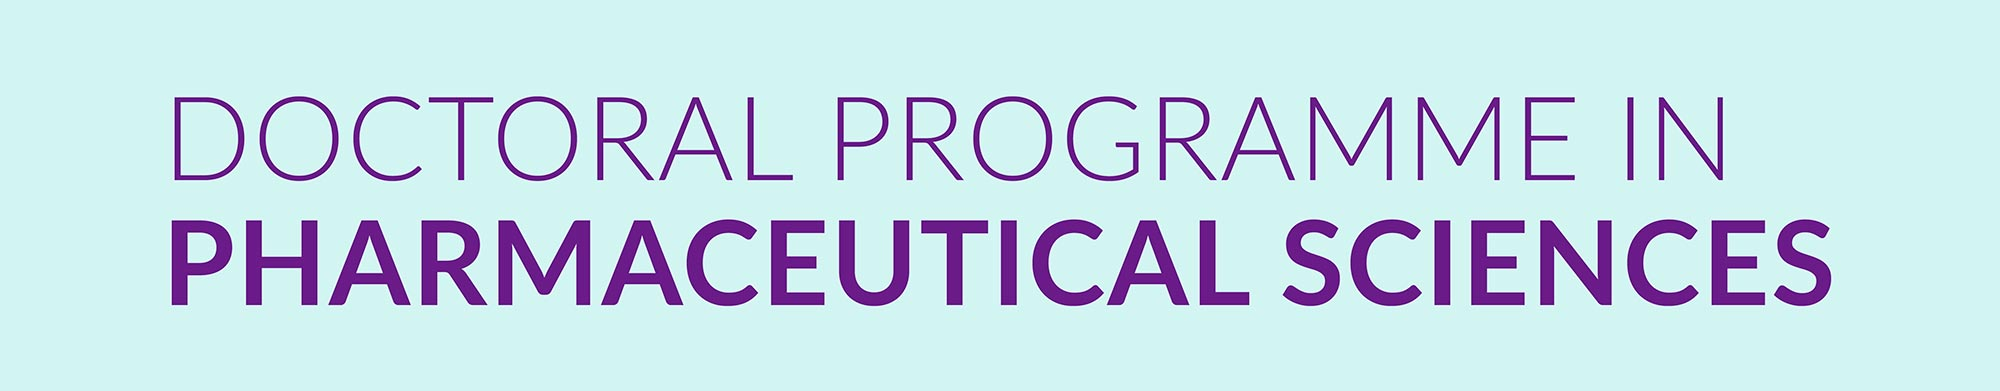 Doctoral Programme in Pharmaceutical Sciences